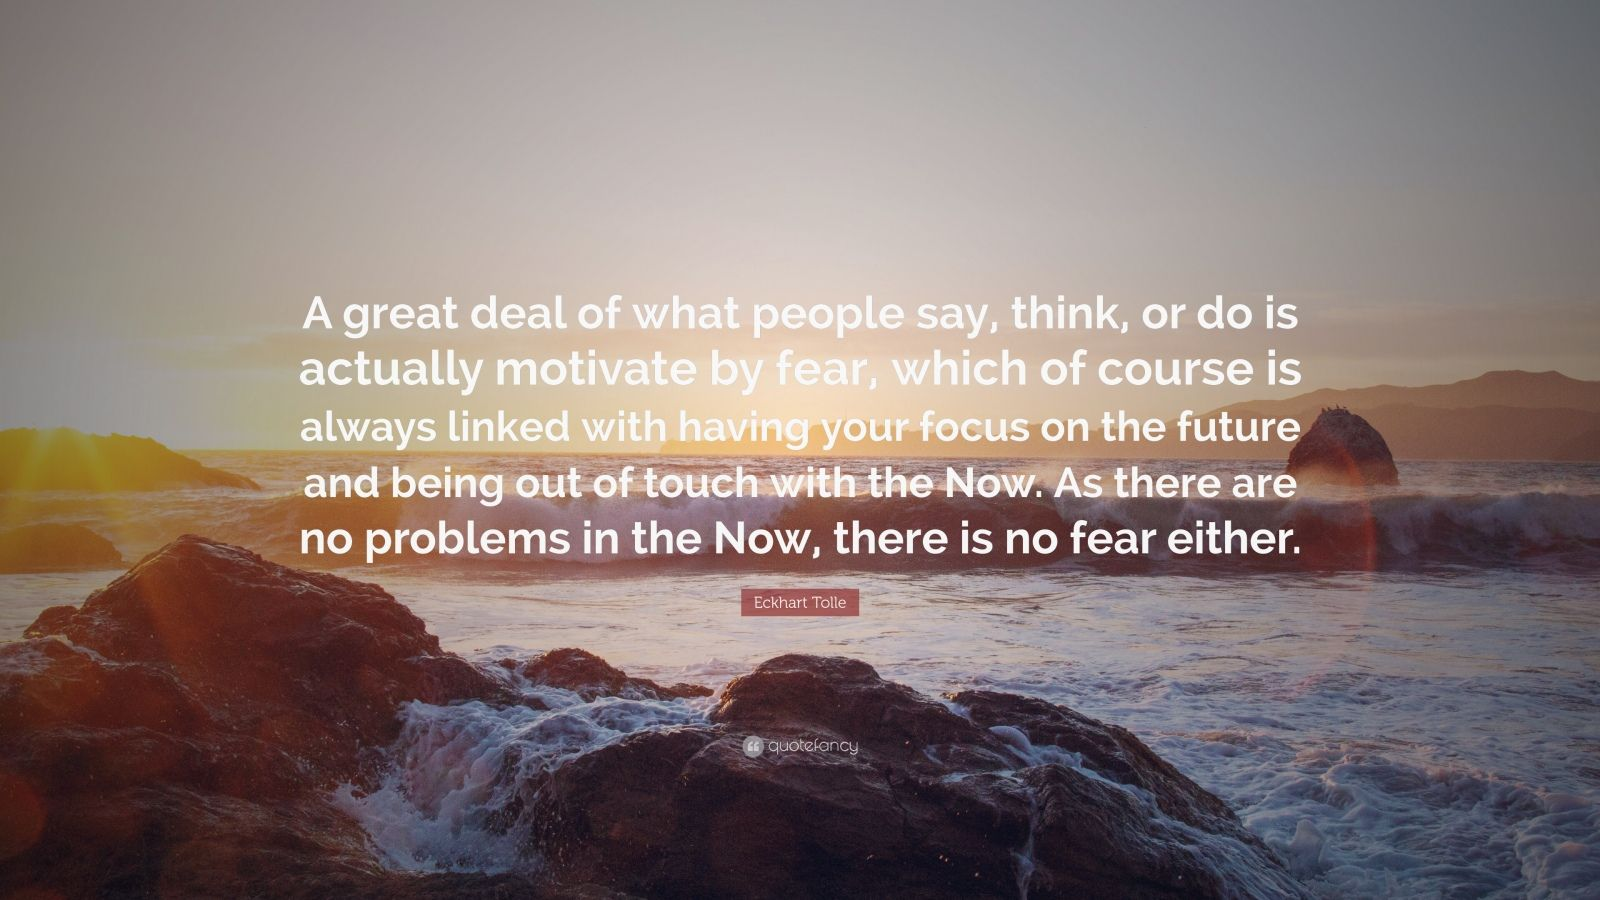 """Eckhart Tolle Quote: """"A great deal of what people say, think, or do is actually motivate by fear, which of course is always linked with having your focus on the future and being out of touch with the Now. As there are no problems in the Now, there is no fear either."""""""